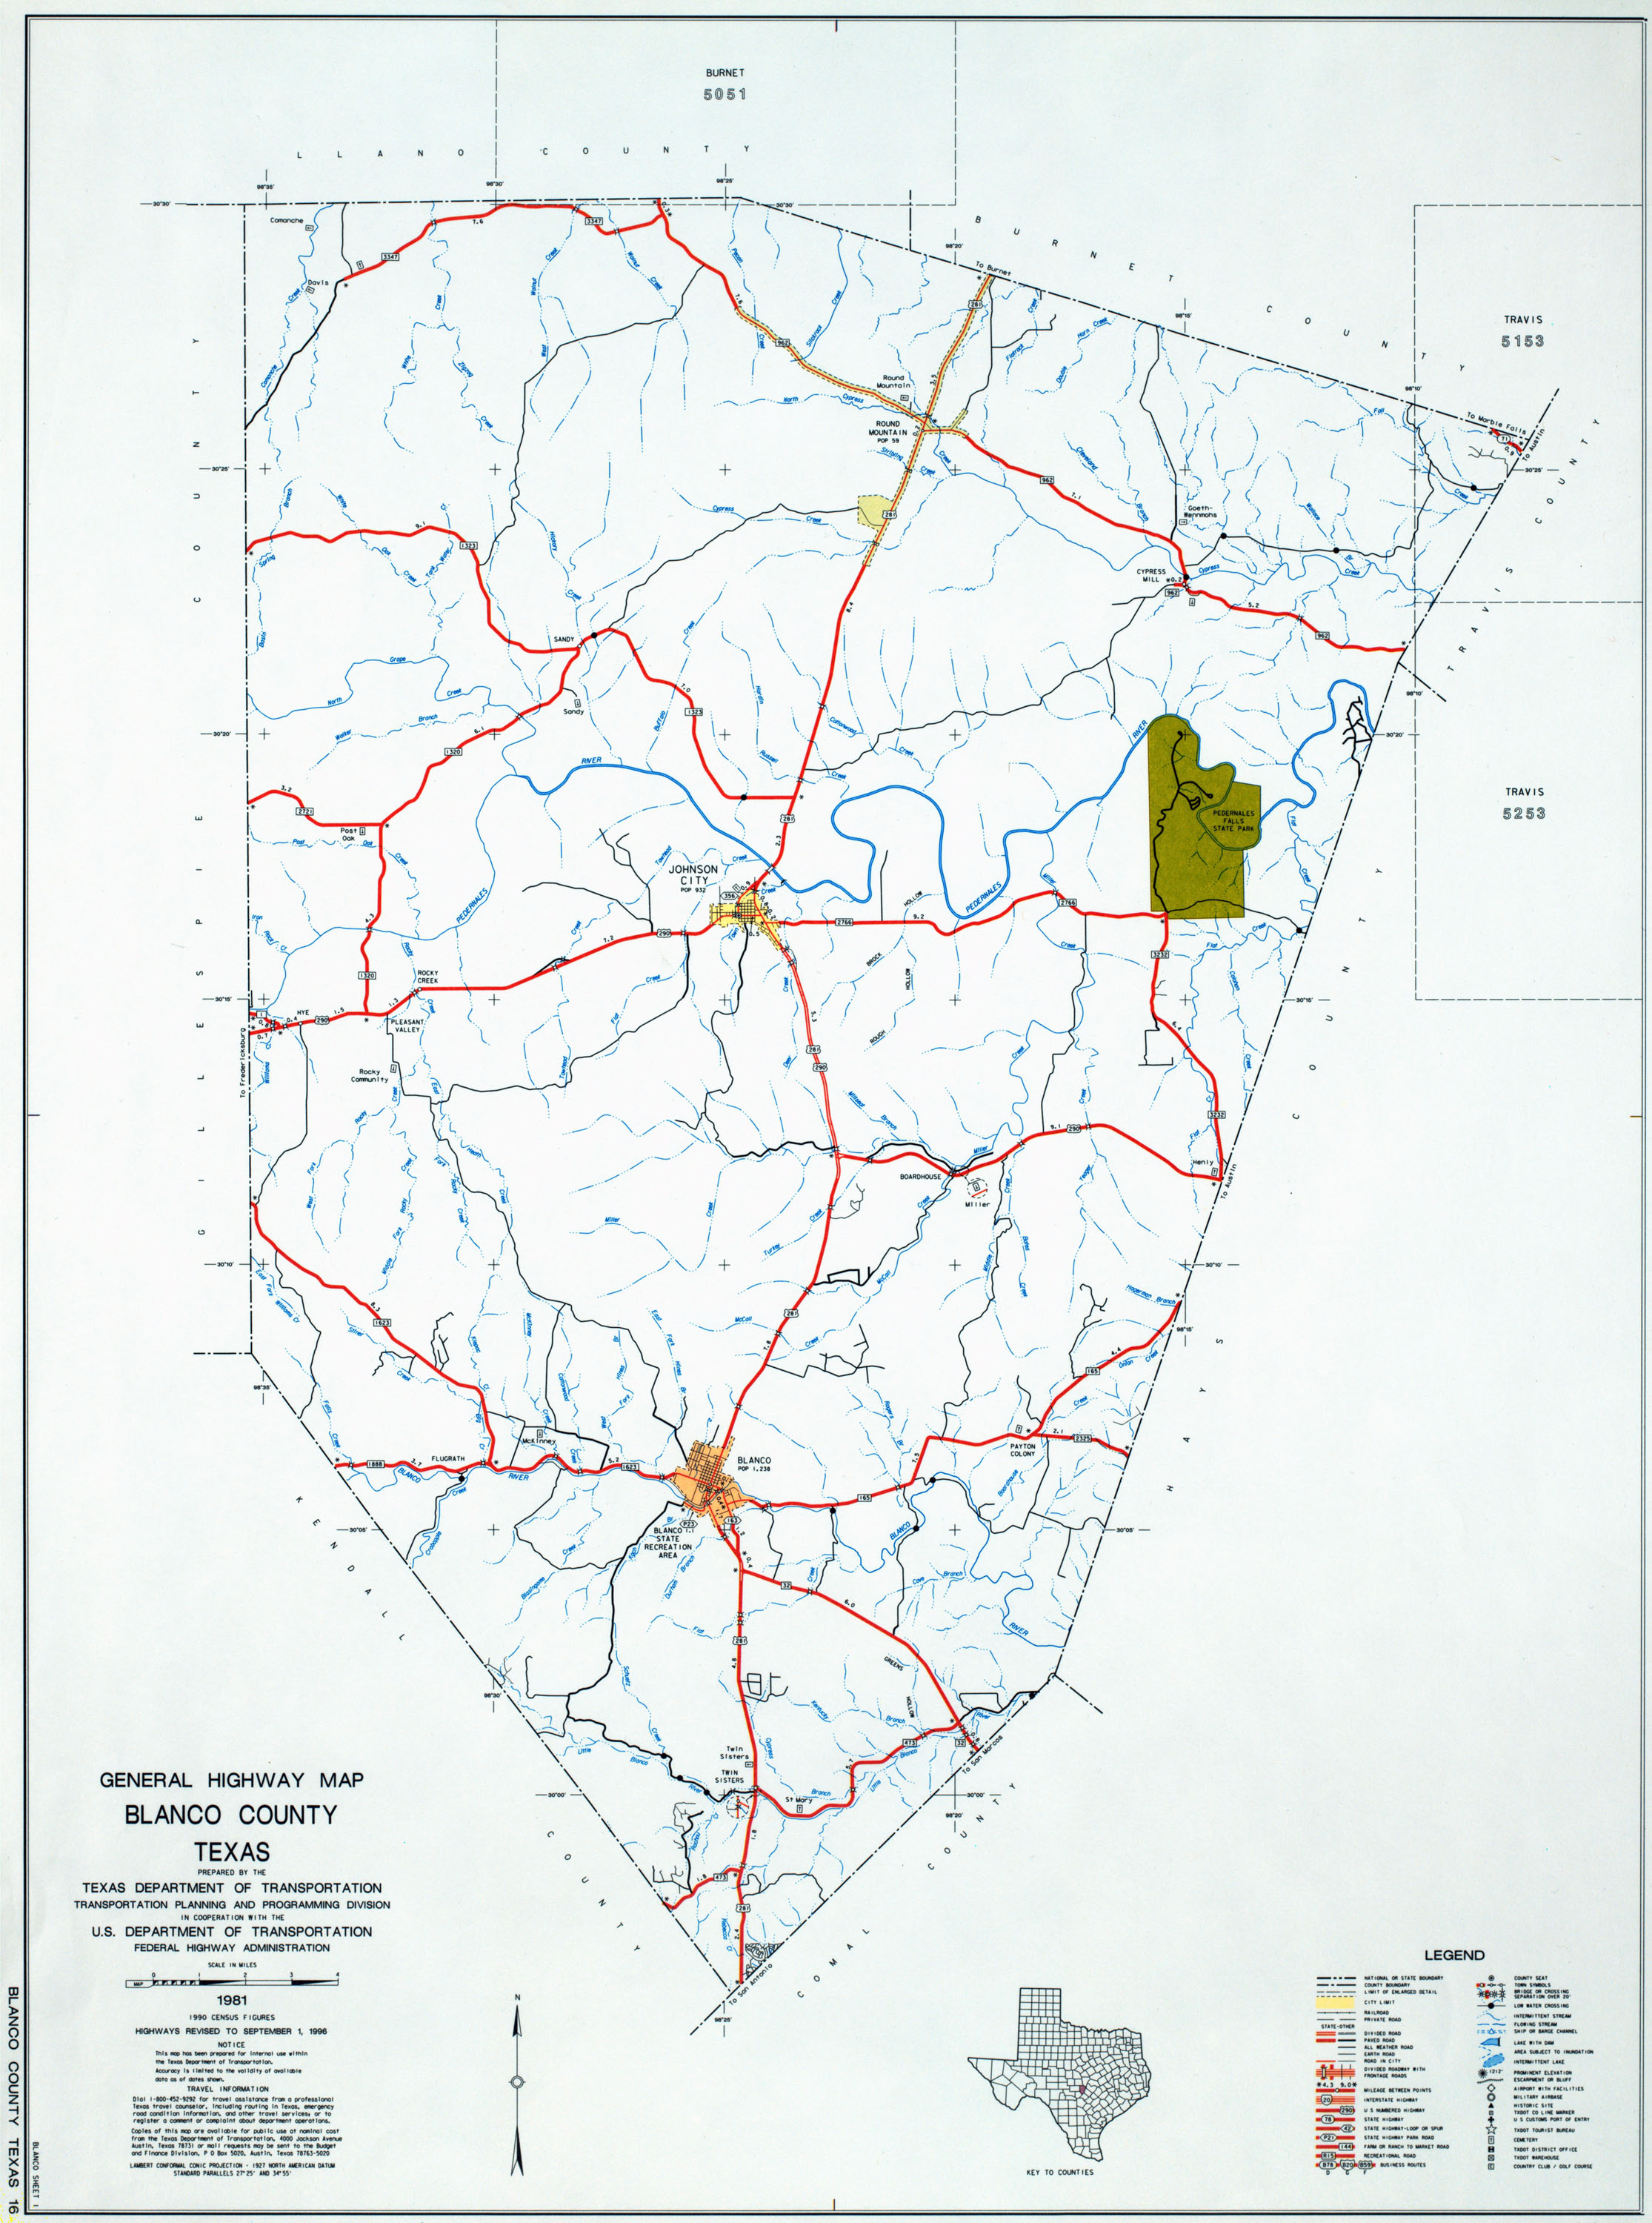 Counties Map Of Texas.Texas County Highway Maps Browse Perry Castaneda Map Collection